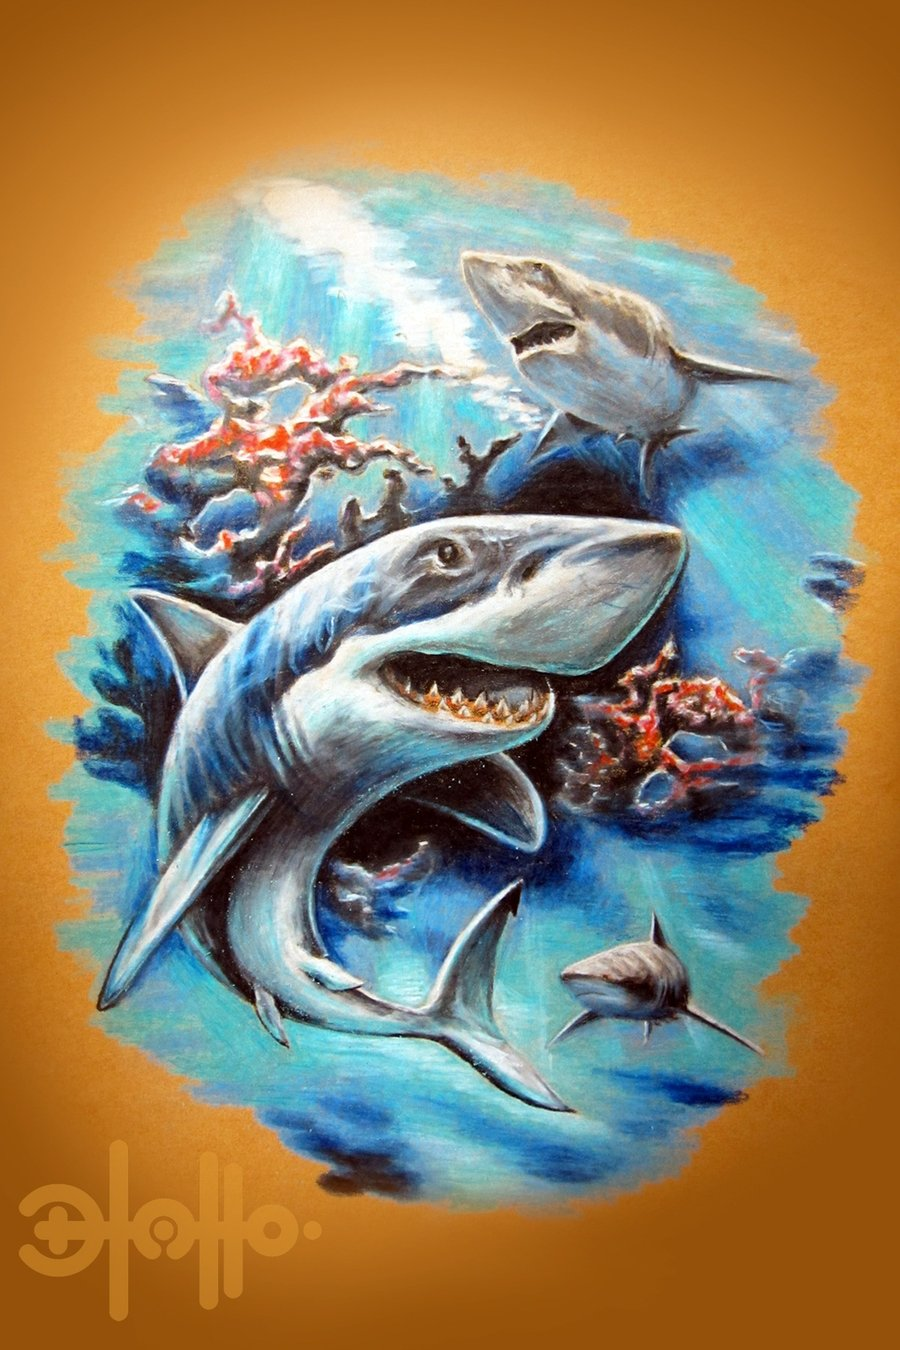 shark tattoos designs ideas and meaning tattoos for you. Black Bedroom Furniture Sets. Home Design Ideas